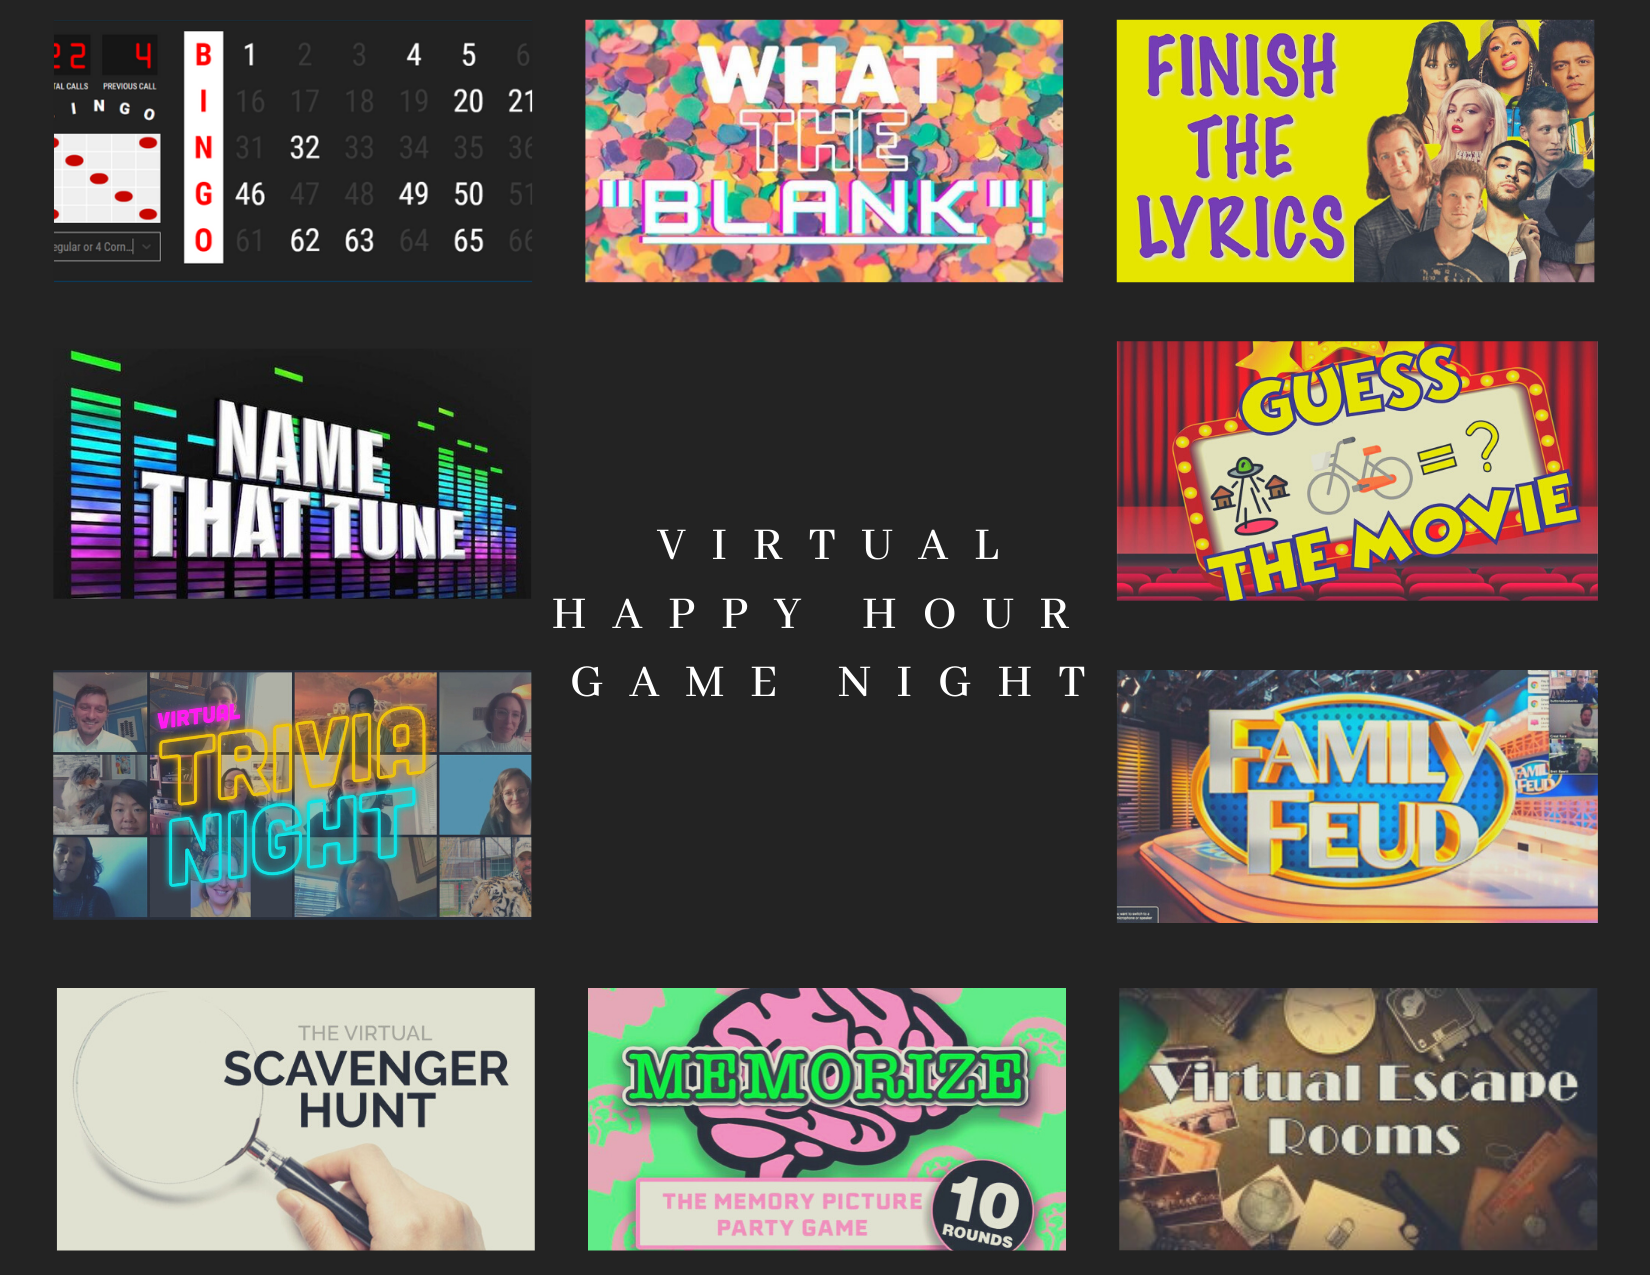 Virtual Game Night with delivered snack or cocktail kids